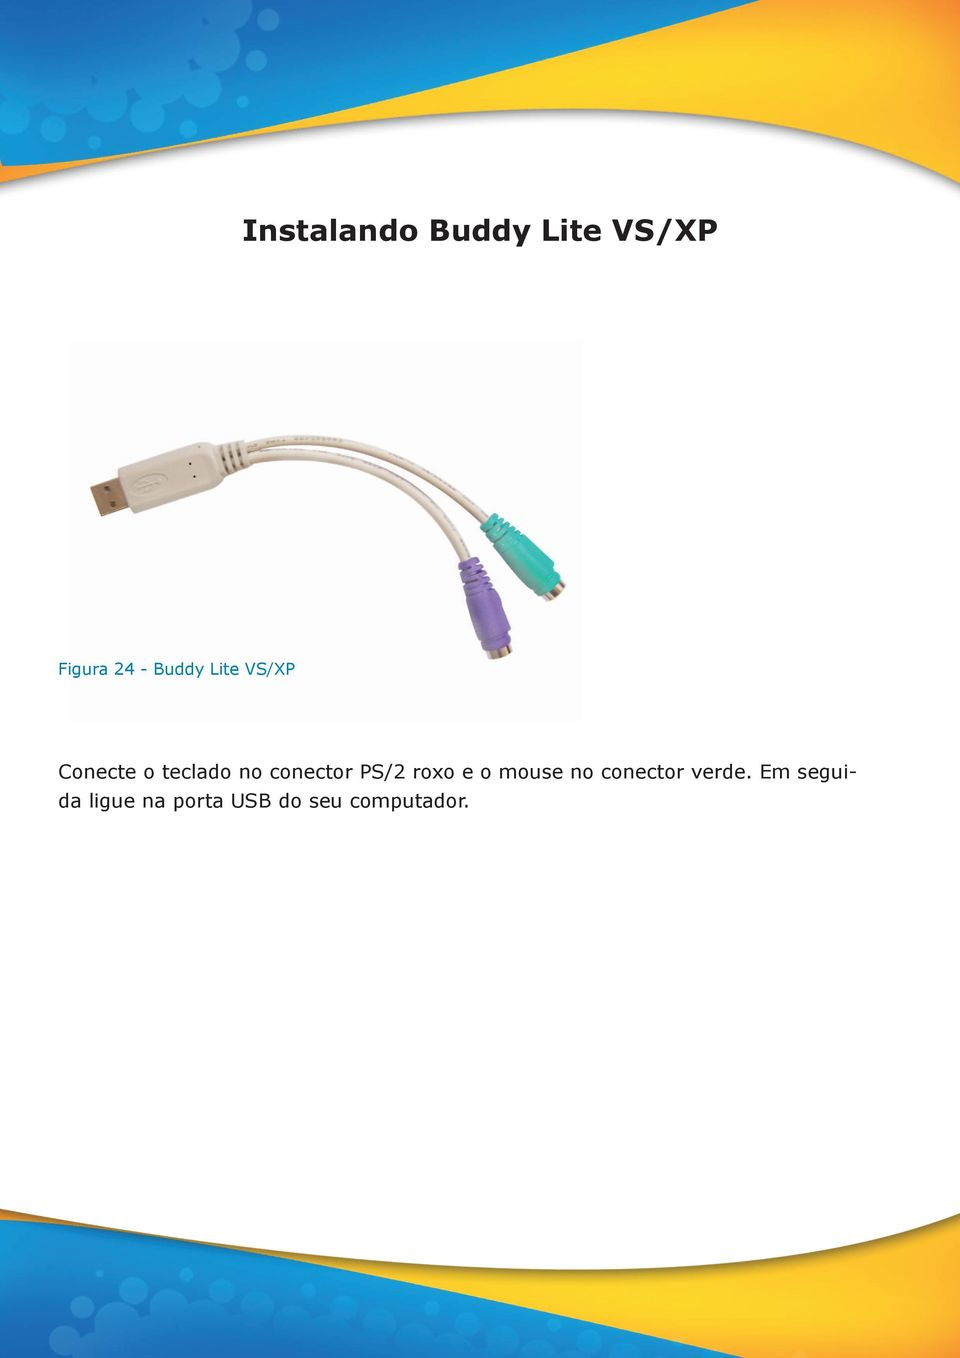 conector PS/2 roxo e o mouse no conector